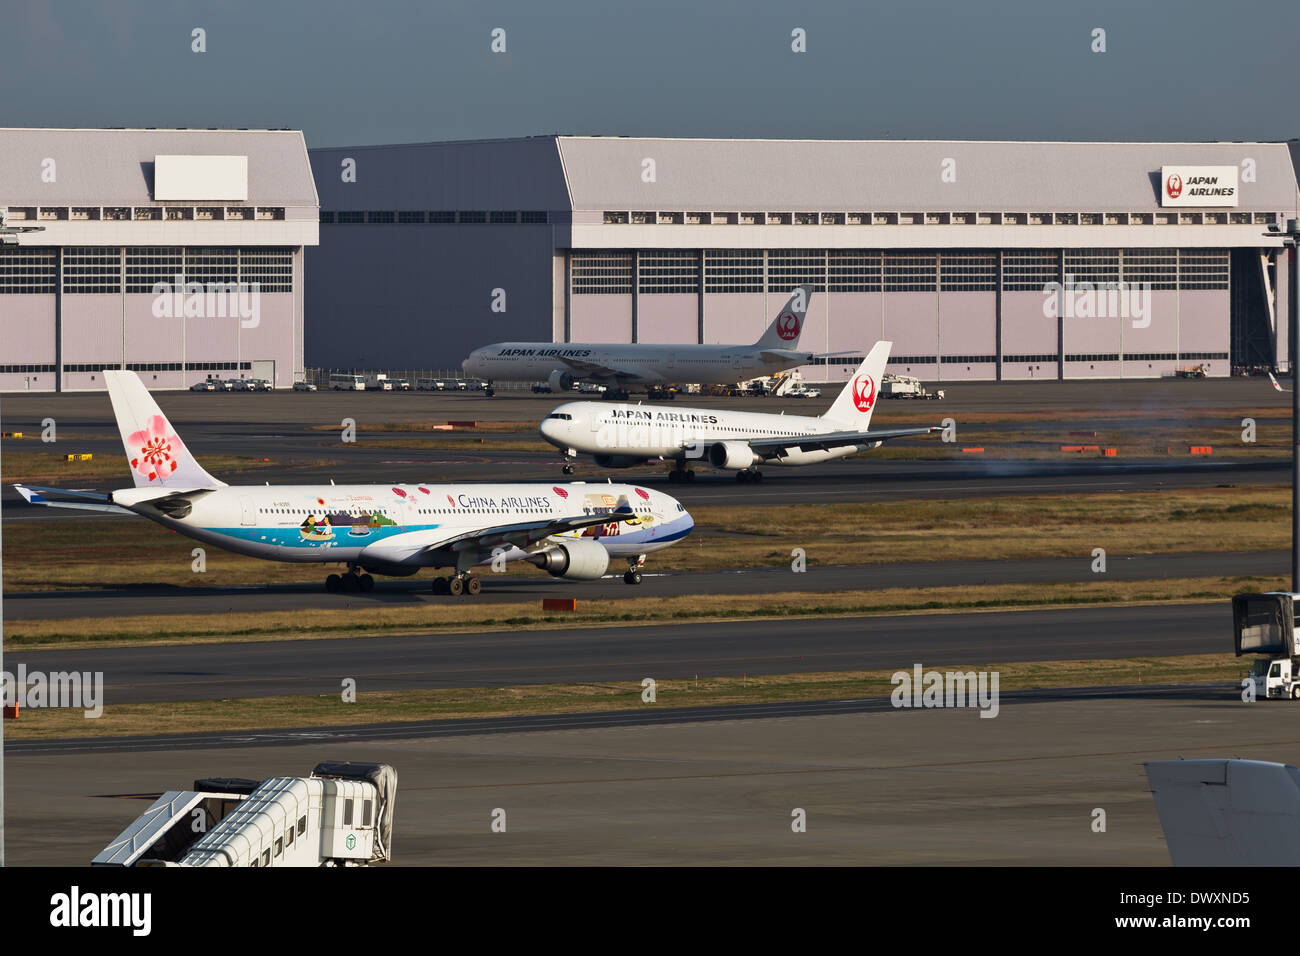 JAL Landing China Airlines Take Off at the same time. - Stock Image